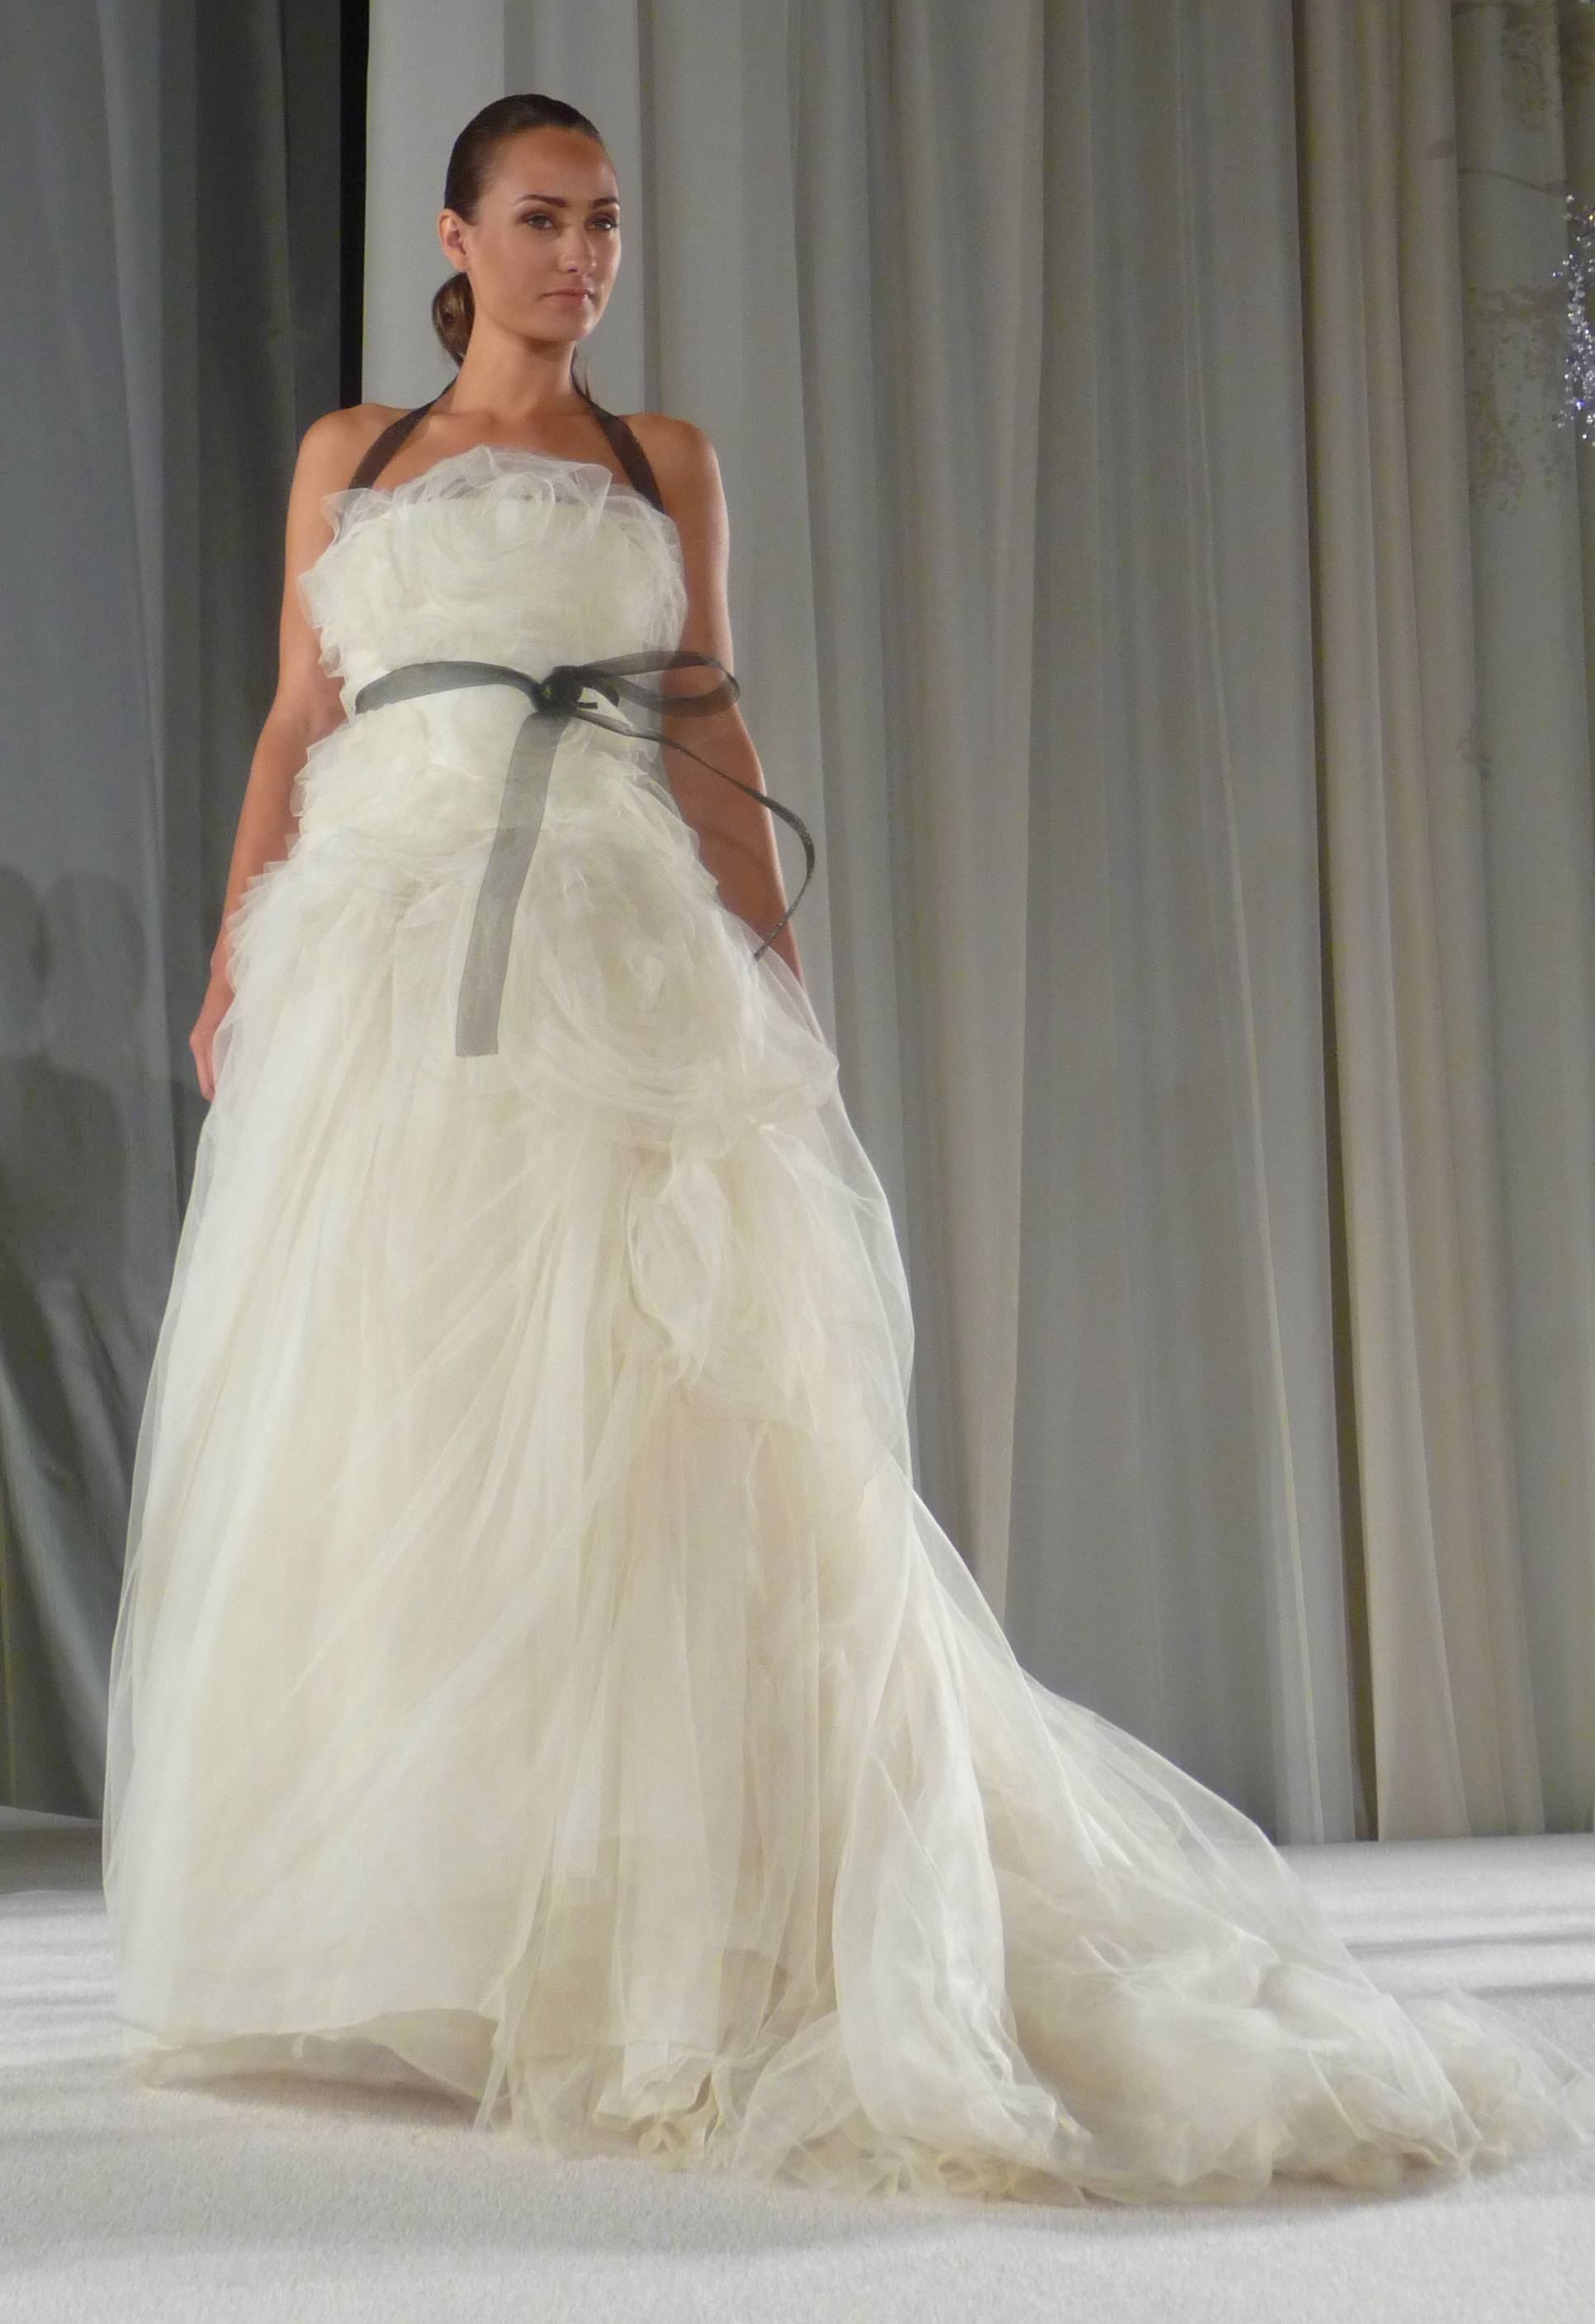 An Afternoon of Bridal Luxury